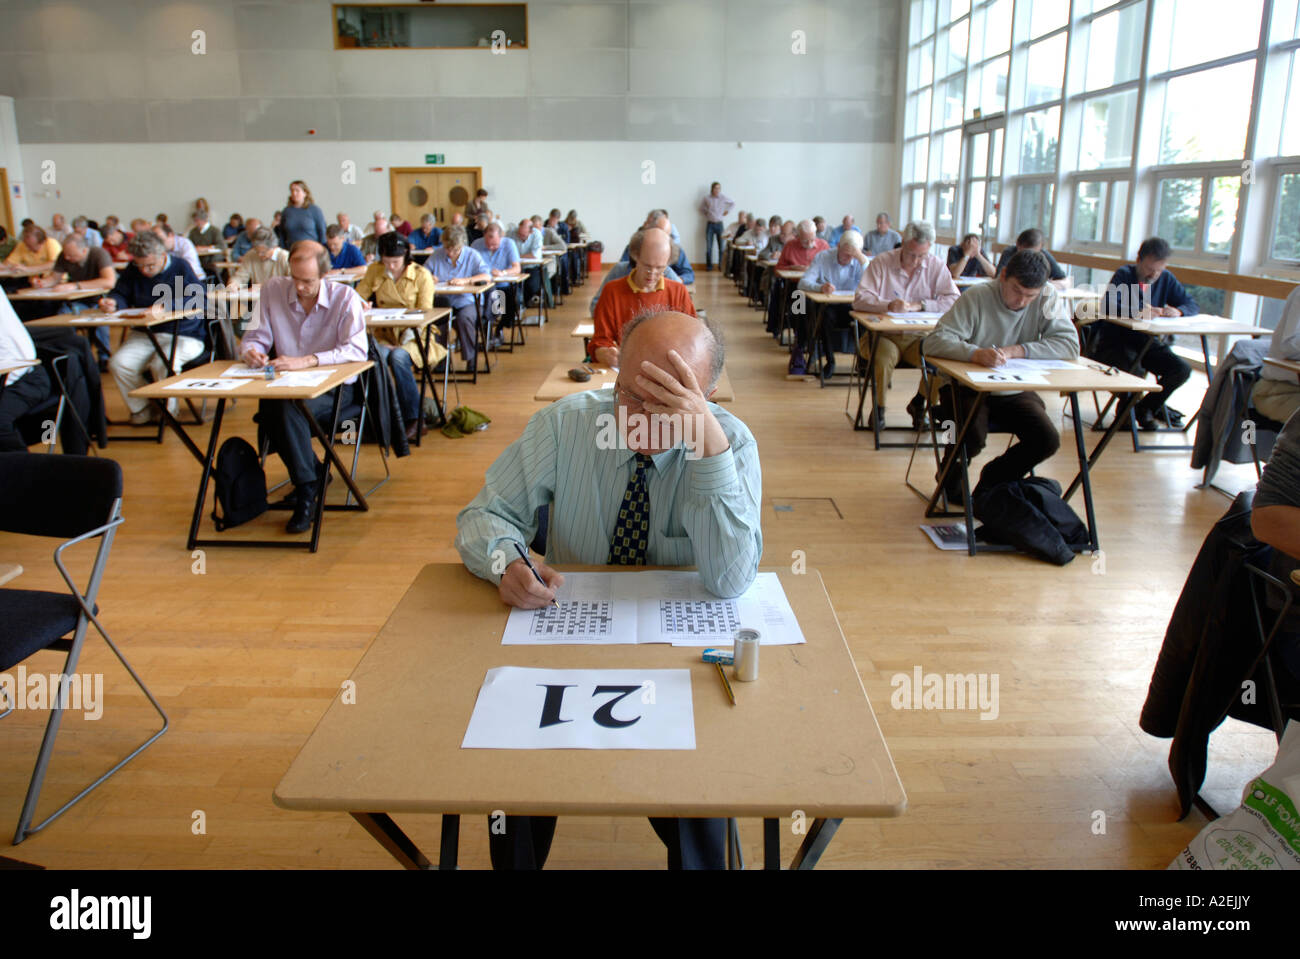 CONTESTANTS AT THE TIMES NATIONAL CROSSWORD COMPETITION CUP DURING THE CHAMPIONSHIPS IN CHELTENHAM UK 2006 Stock Photo